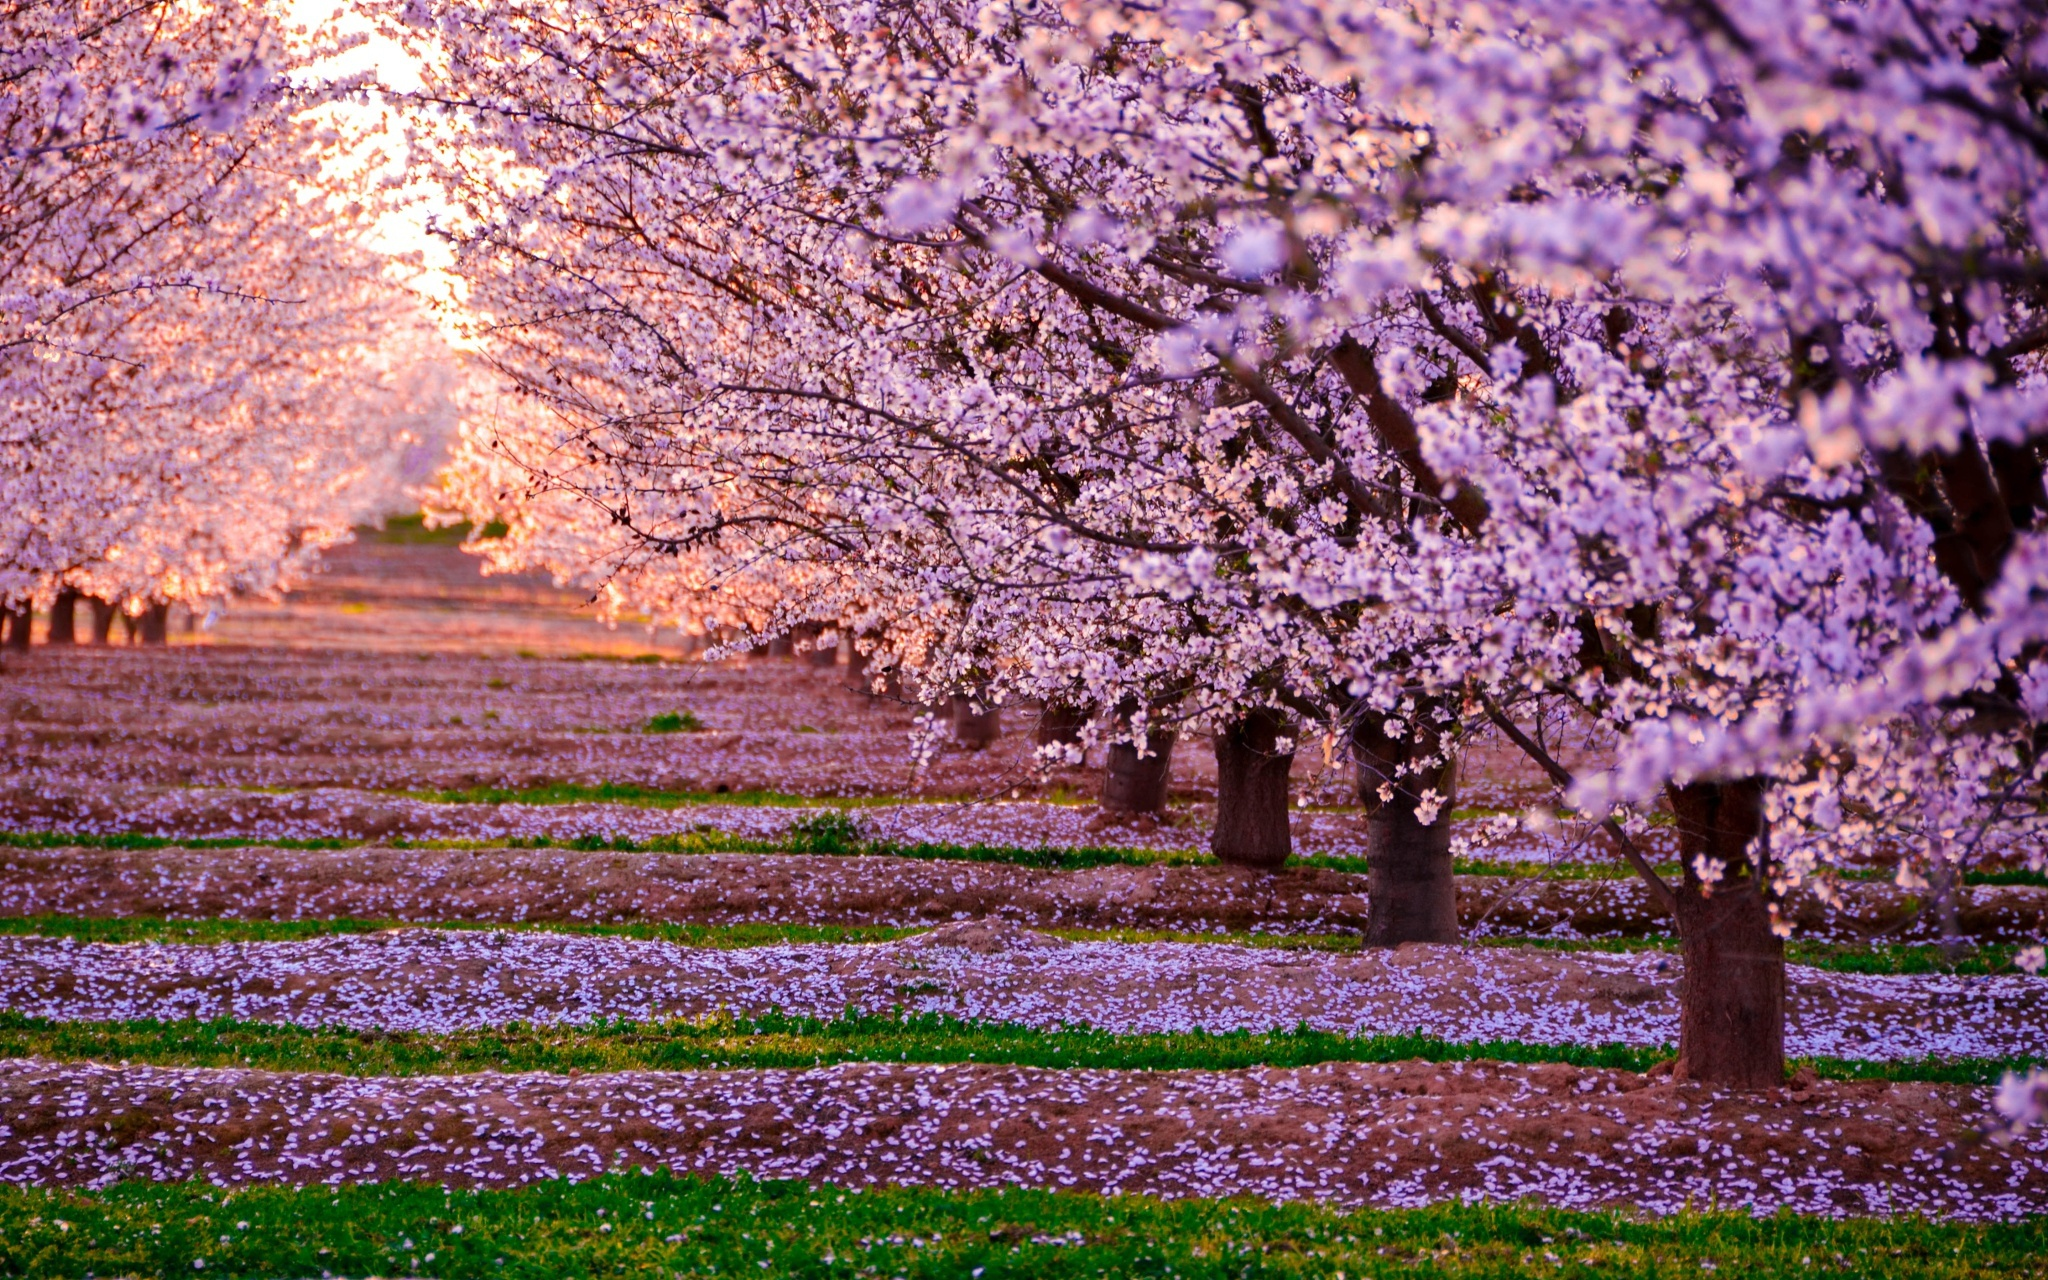 2560x1440 blossom nature pink flowers trees 1440p resolution hd 4k published on march 8 2017 original resolution mightylinksfo